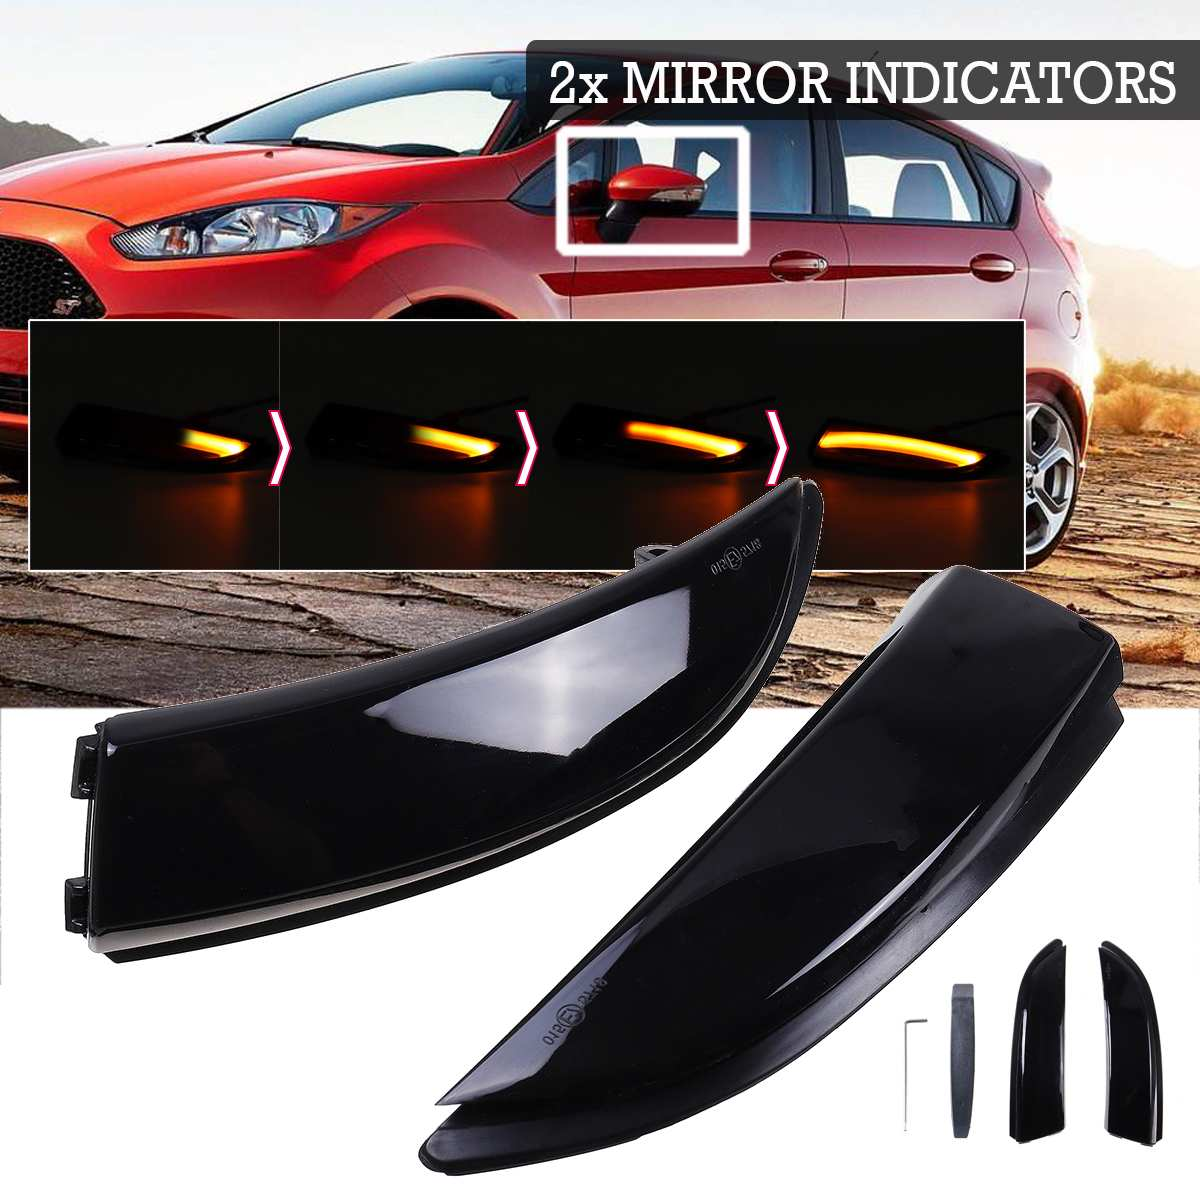 2pcs Flowing Turn Signal Light LED Side Wing Rearview Mirror Dynamic Indicator Blinker Repeater Light For Ford For Fiesta 08-17